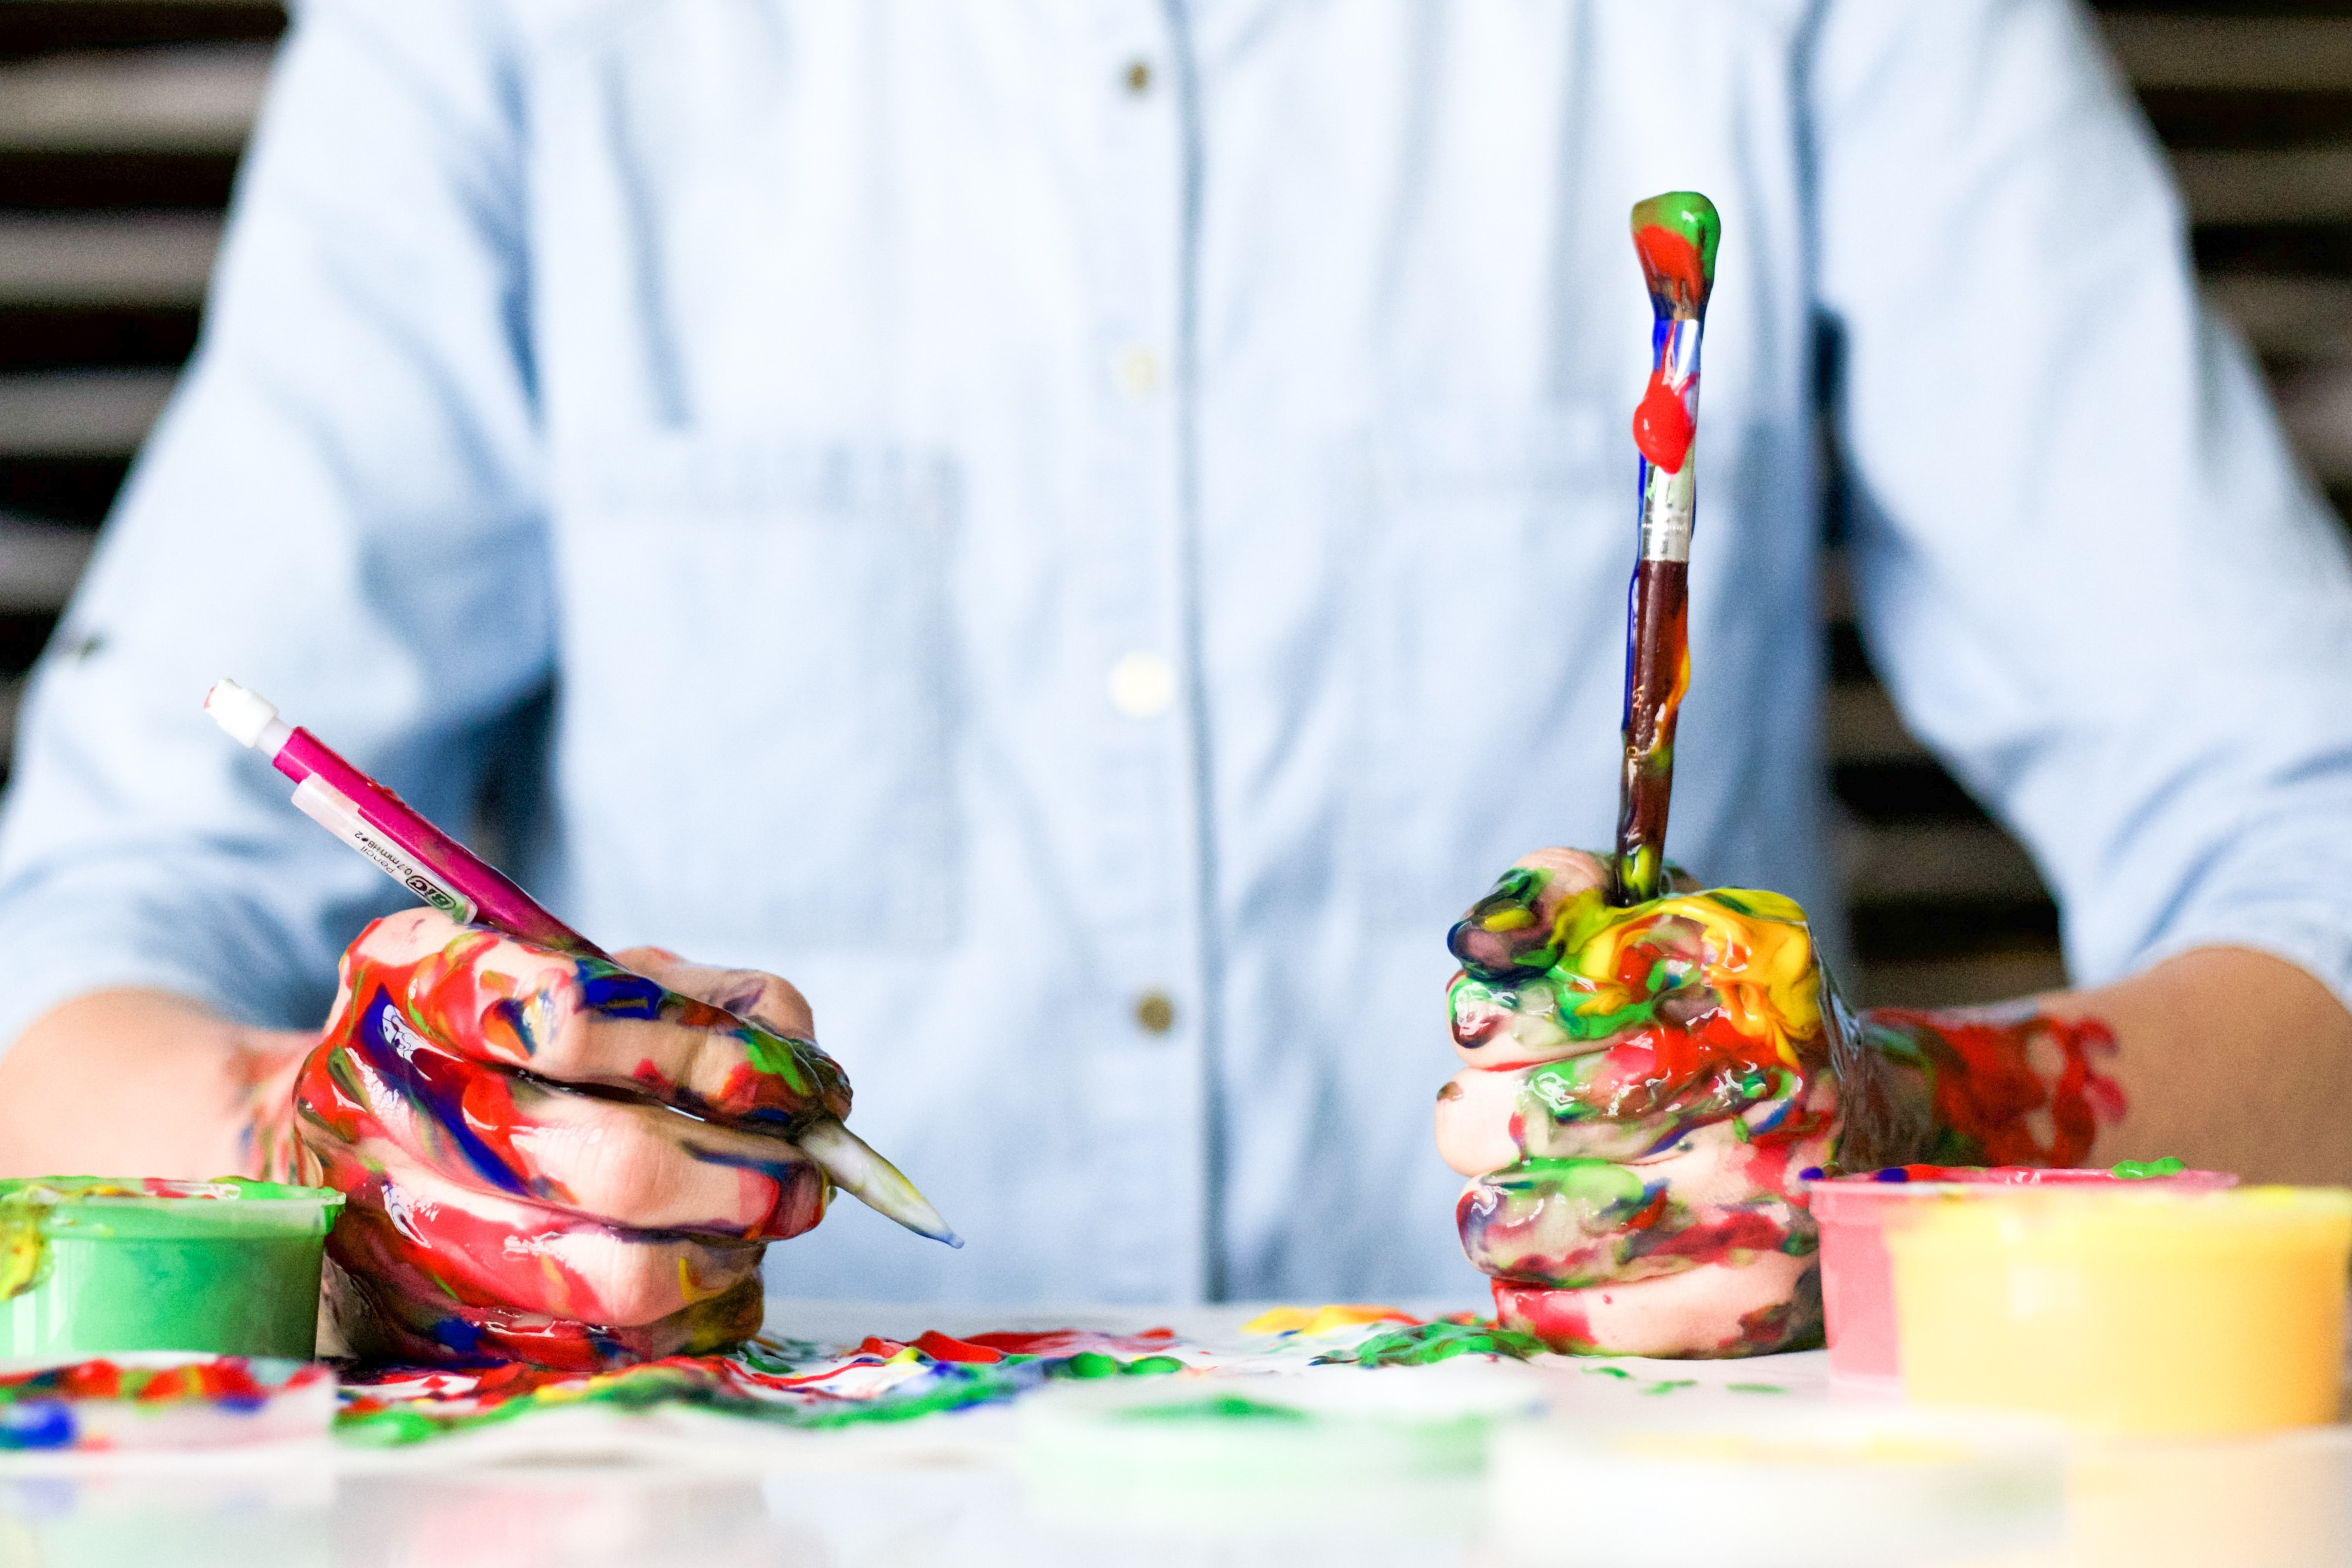 man's hands covered in paint and holding a pen and paintbrush